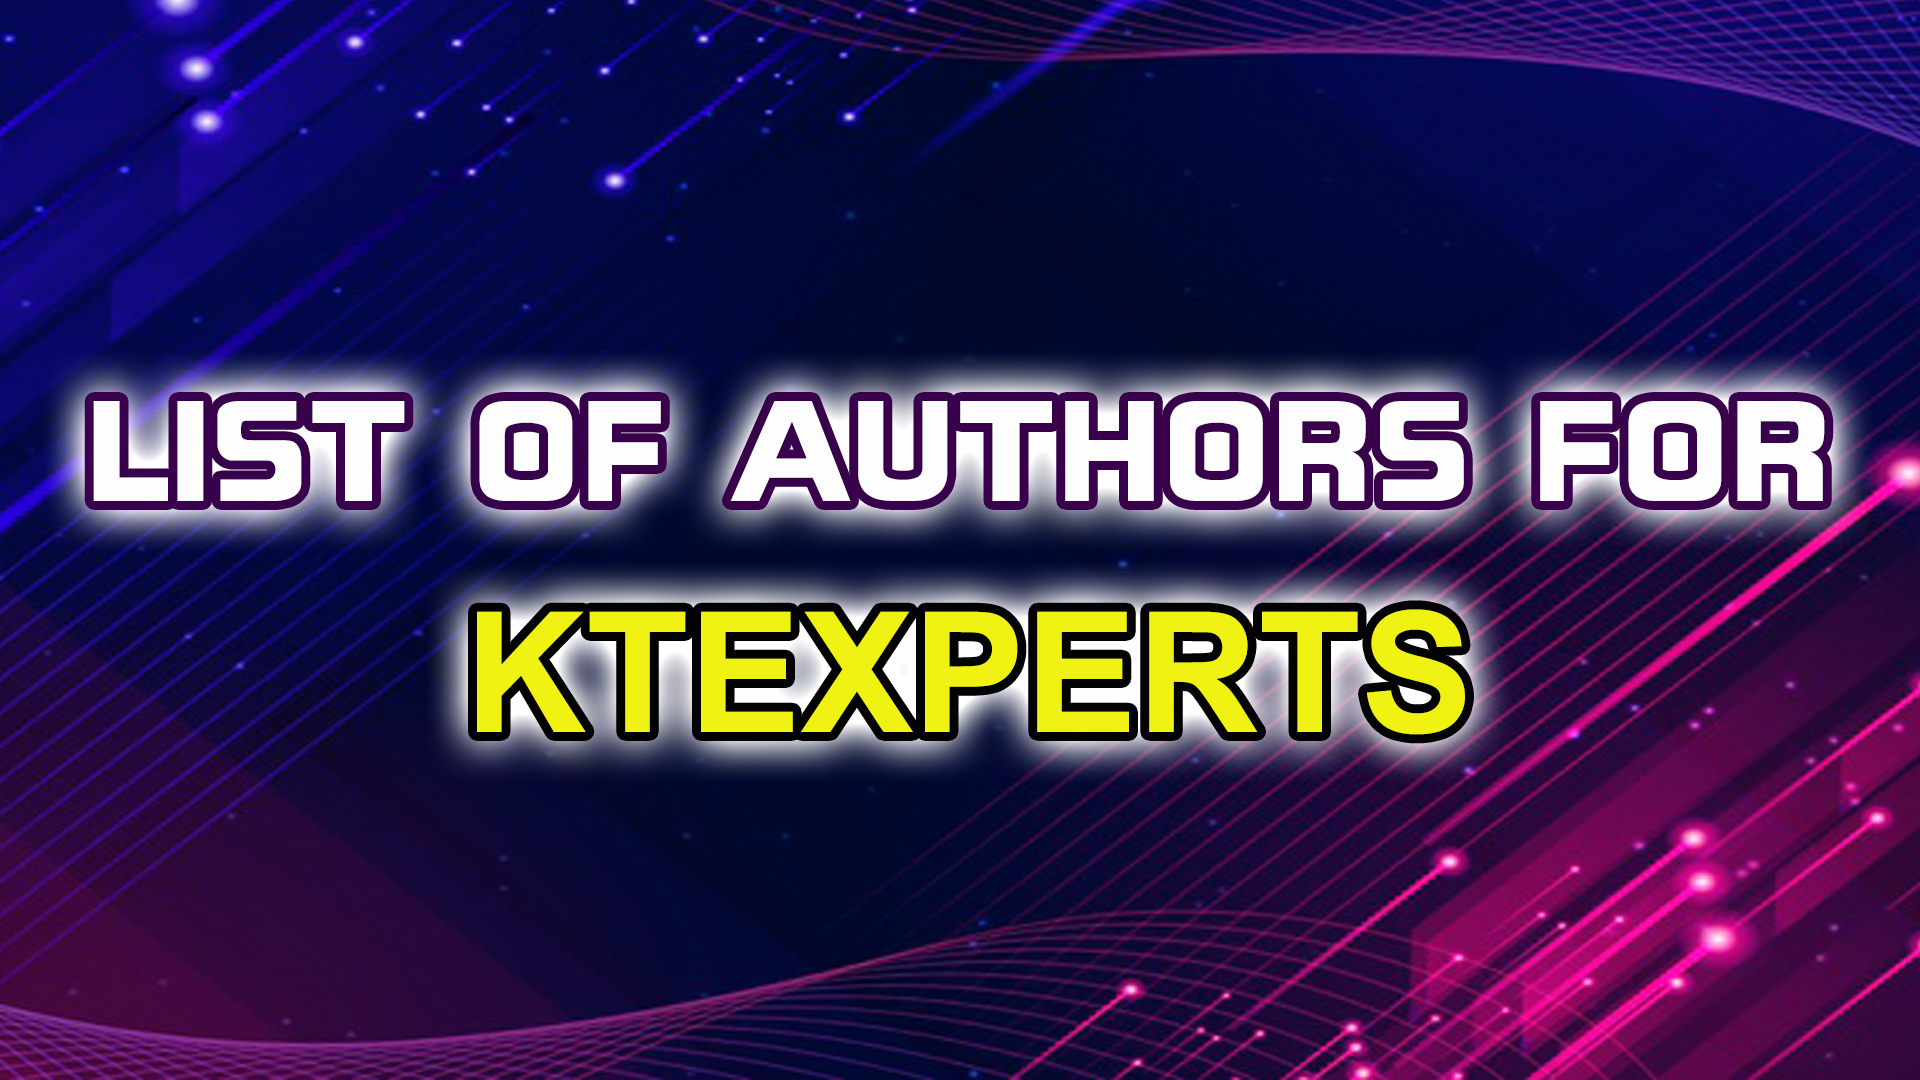 List of Authors for KTEXPERTS